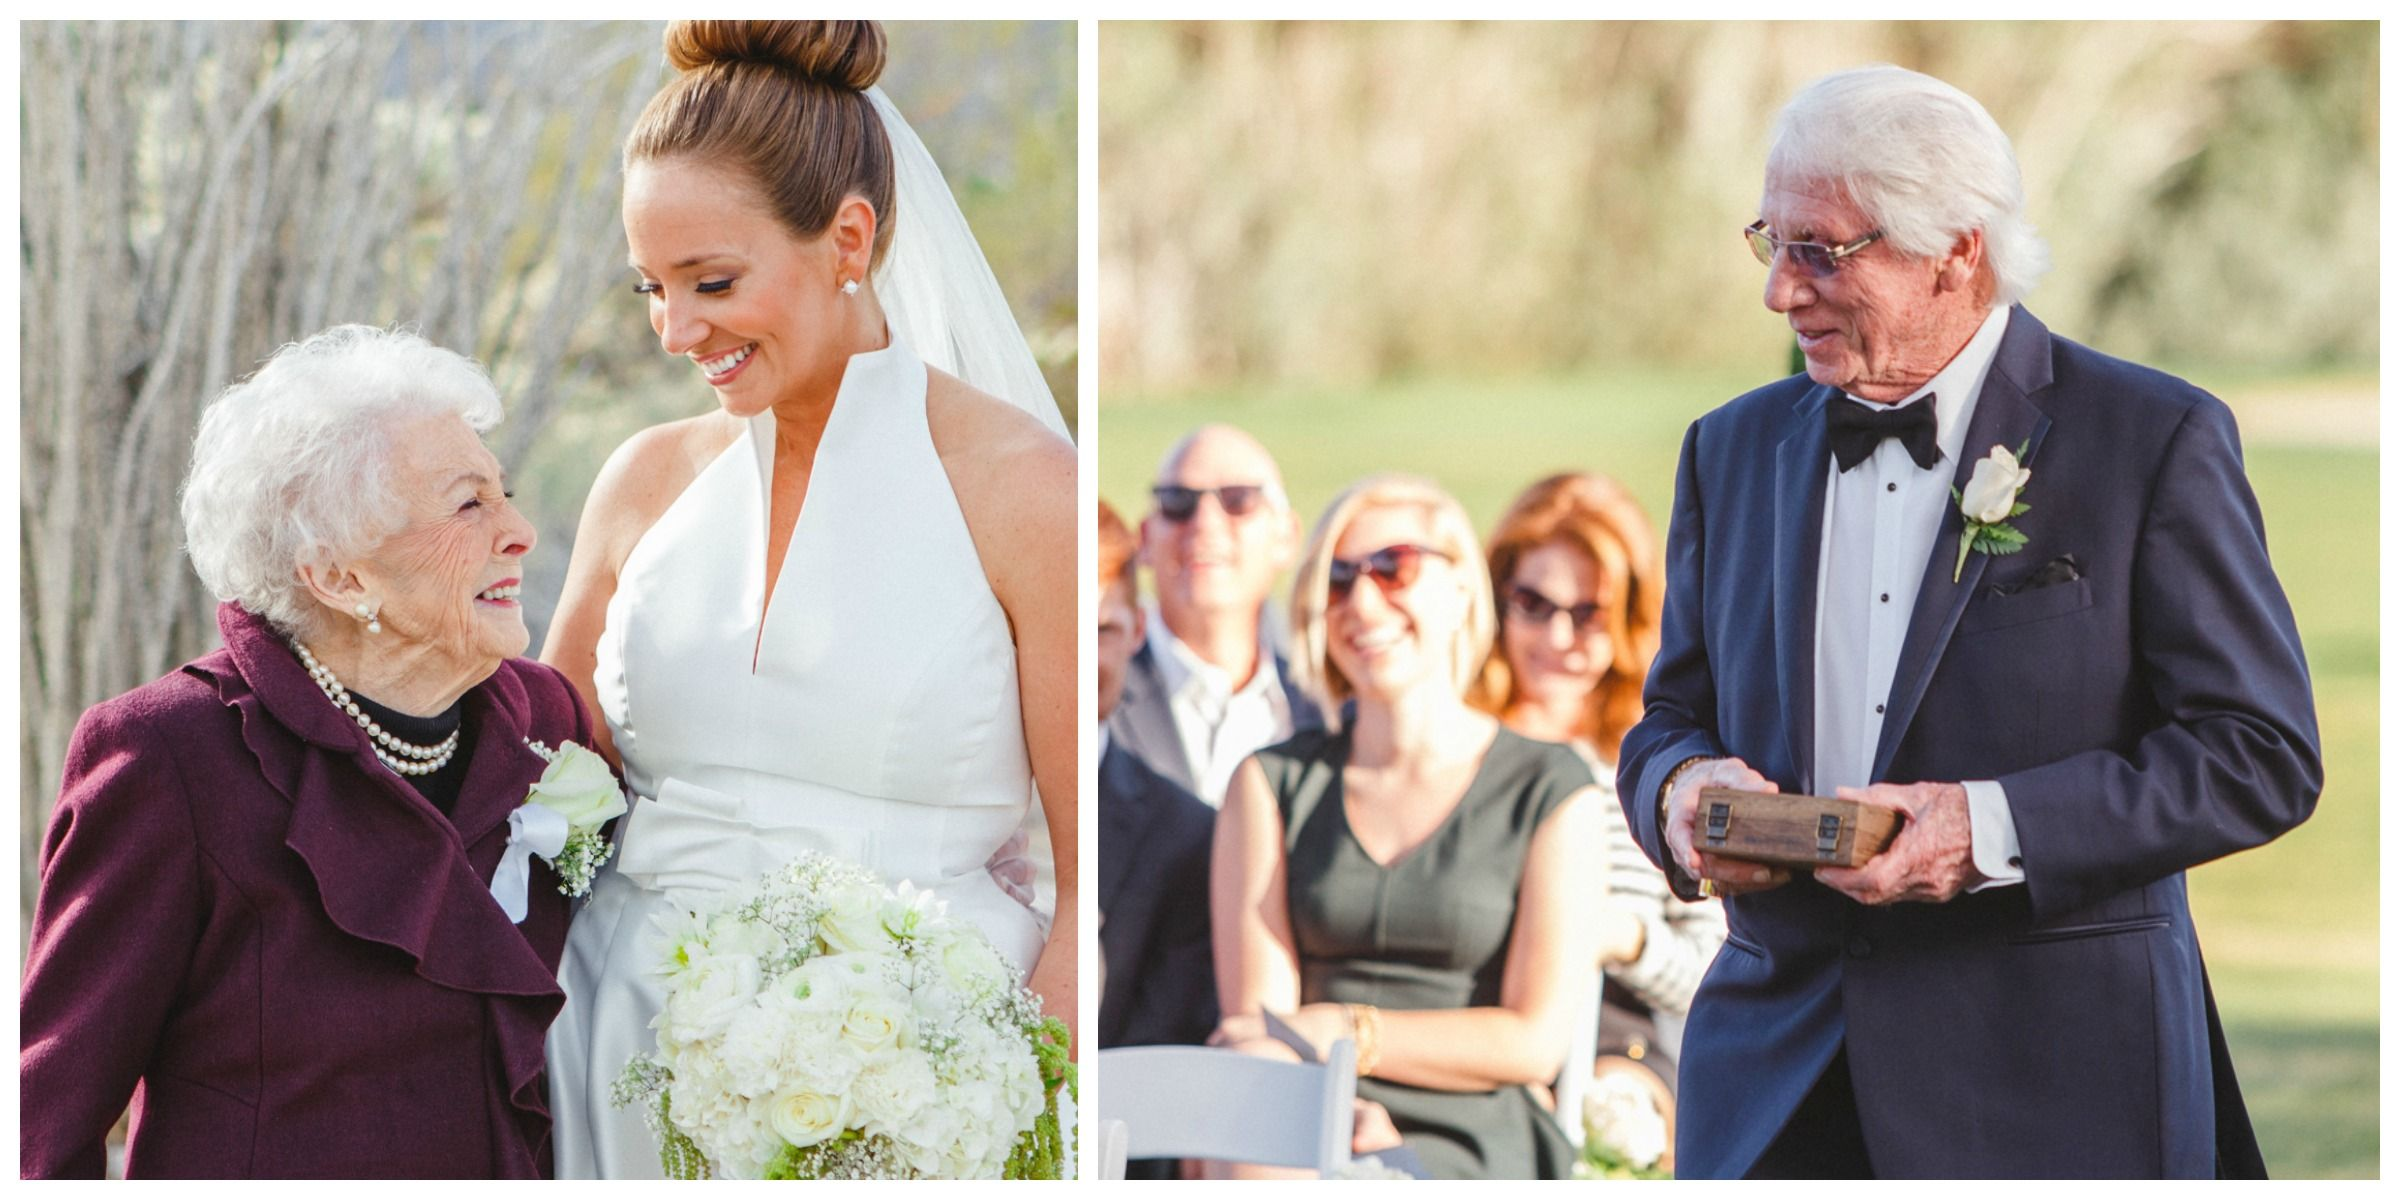 Watch Flower Grandpa Stole the Show at This Wedding video